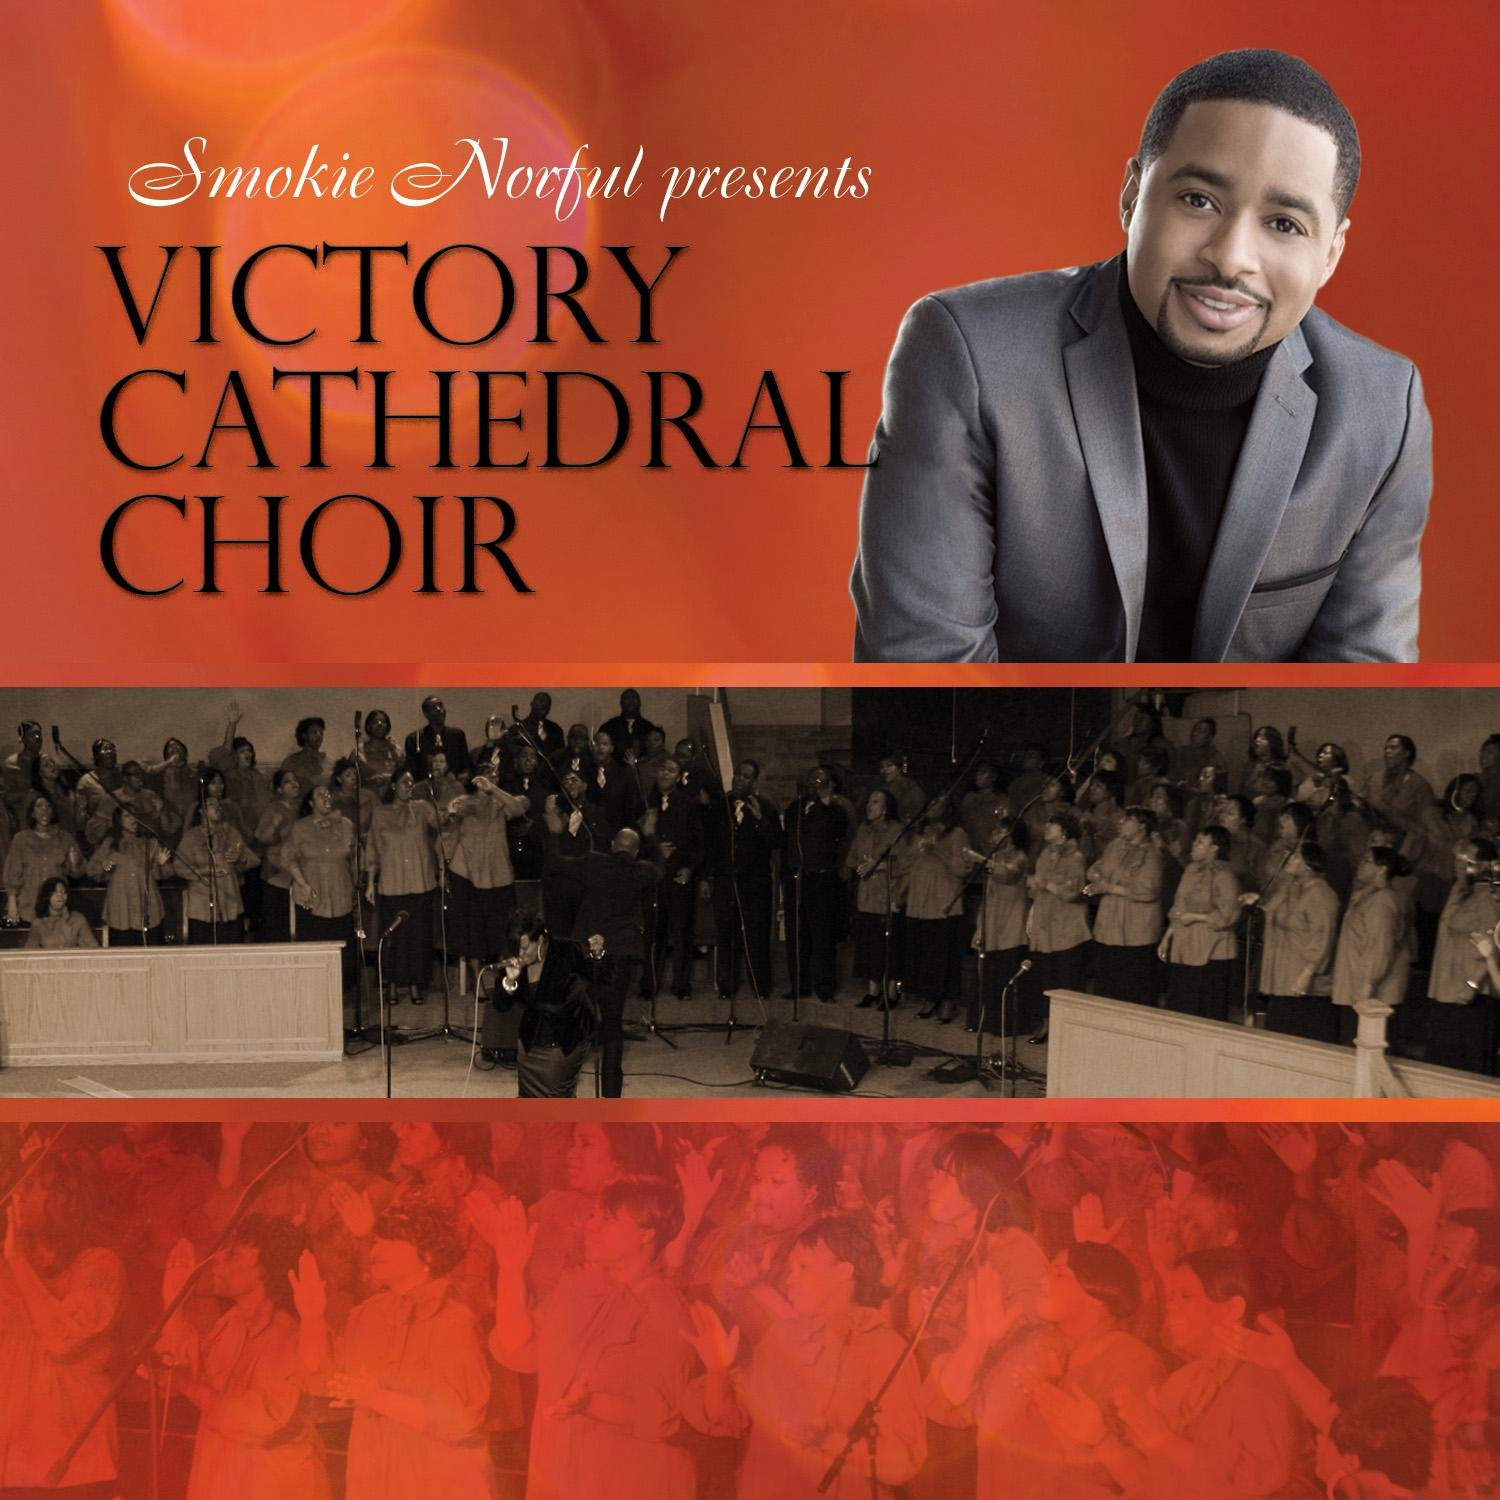 Smokie Norful Presents Victory Cathedral Choir